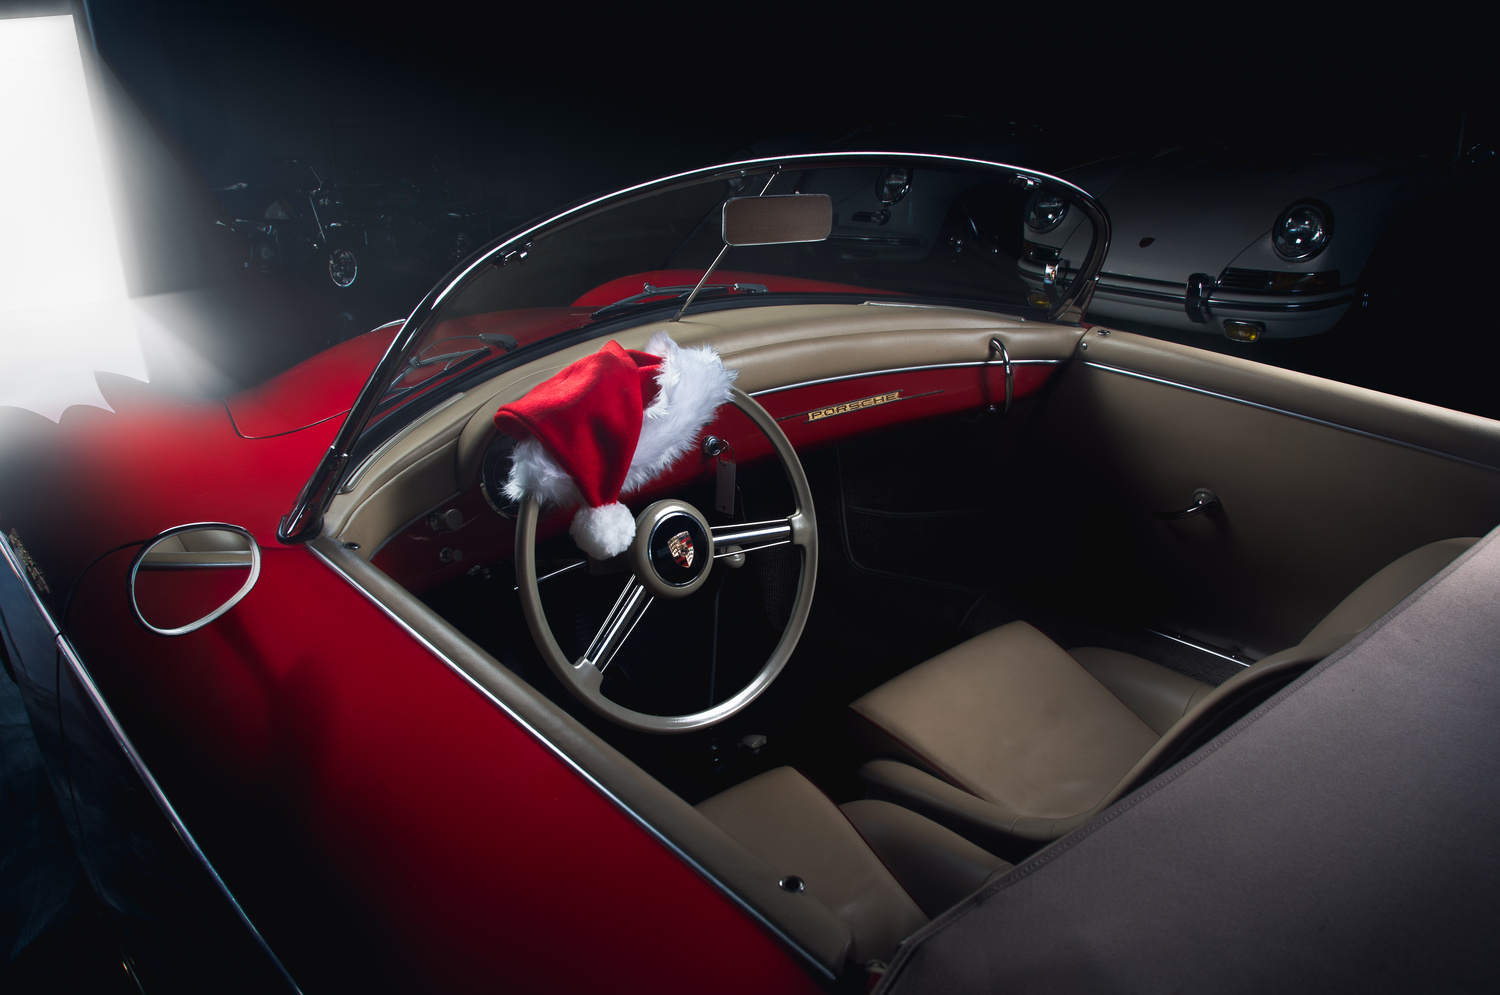 Santa's Sleigh by Jimmy Zhang